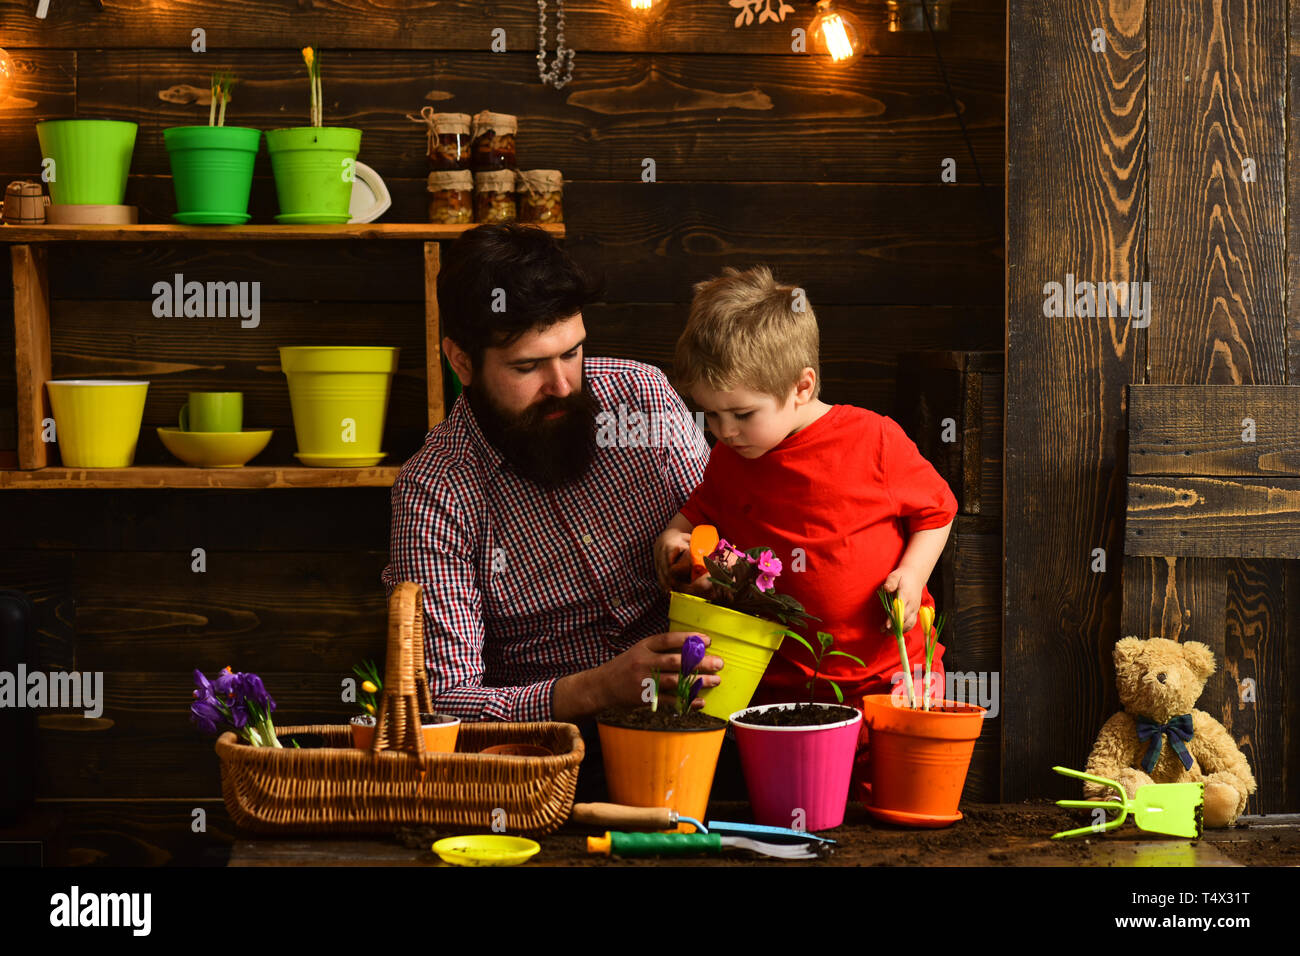 Family day. Greenhouse. Father and son. Fathers day. Flower care watering. Soil fertilizers. happy gardeners with spring flowers. bearded man and litt - Stock Image